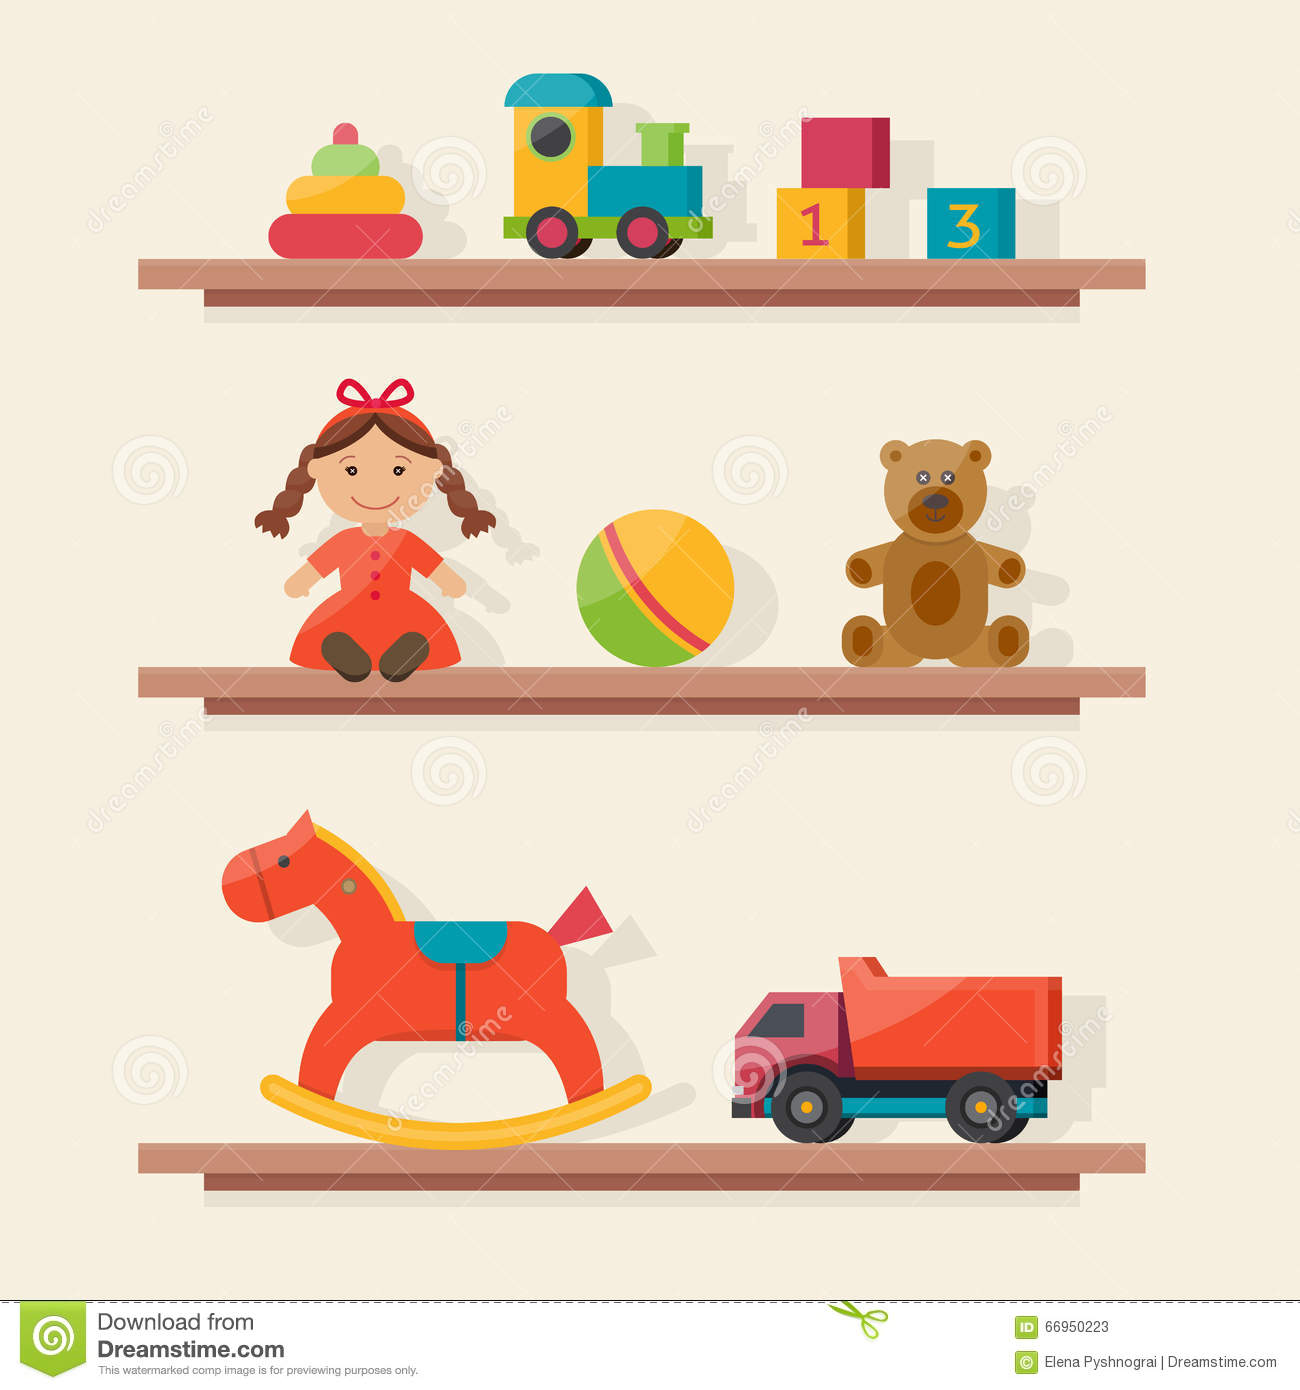 Kids Room Decoration Space Theme Vector Illustration: Kids Toys In Boxes. Stock Vector. Image Of Inside, Chairs